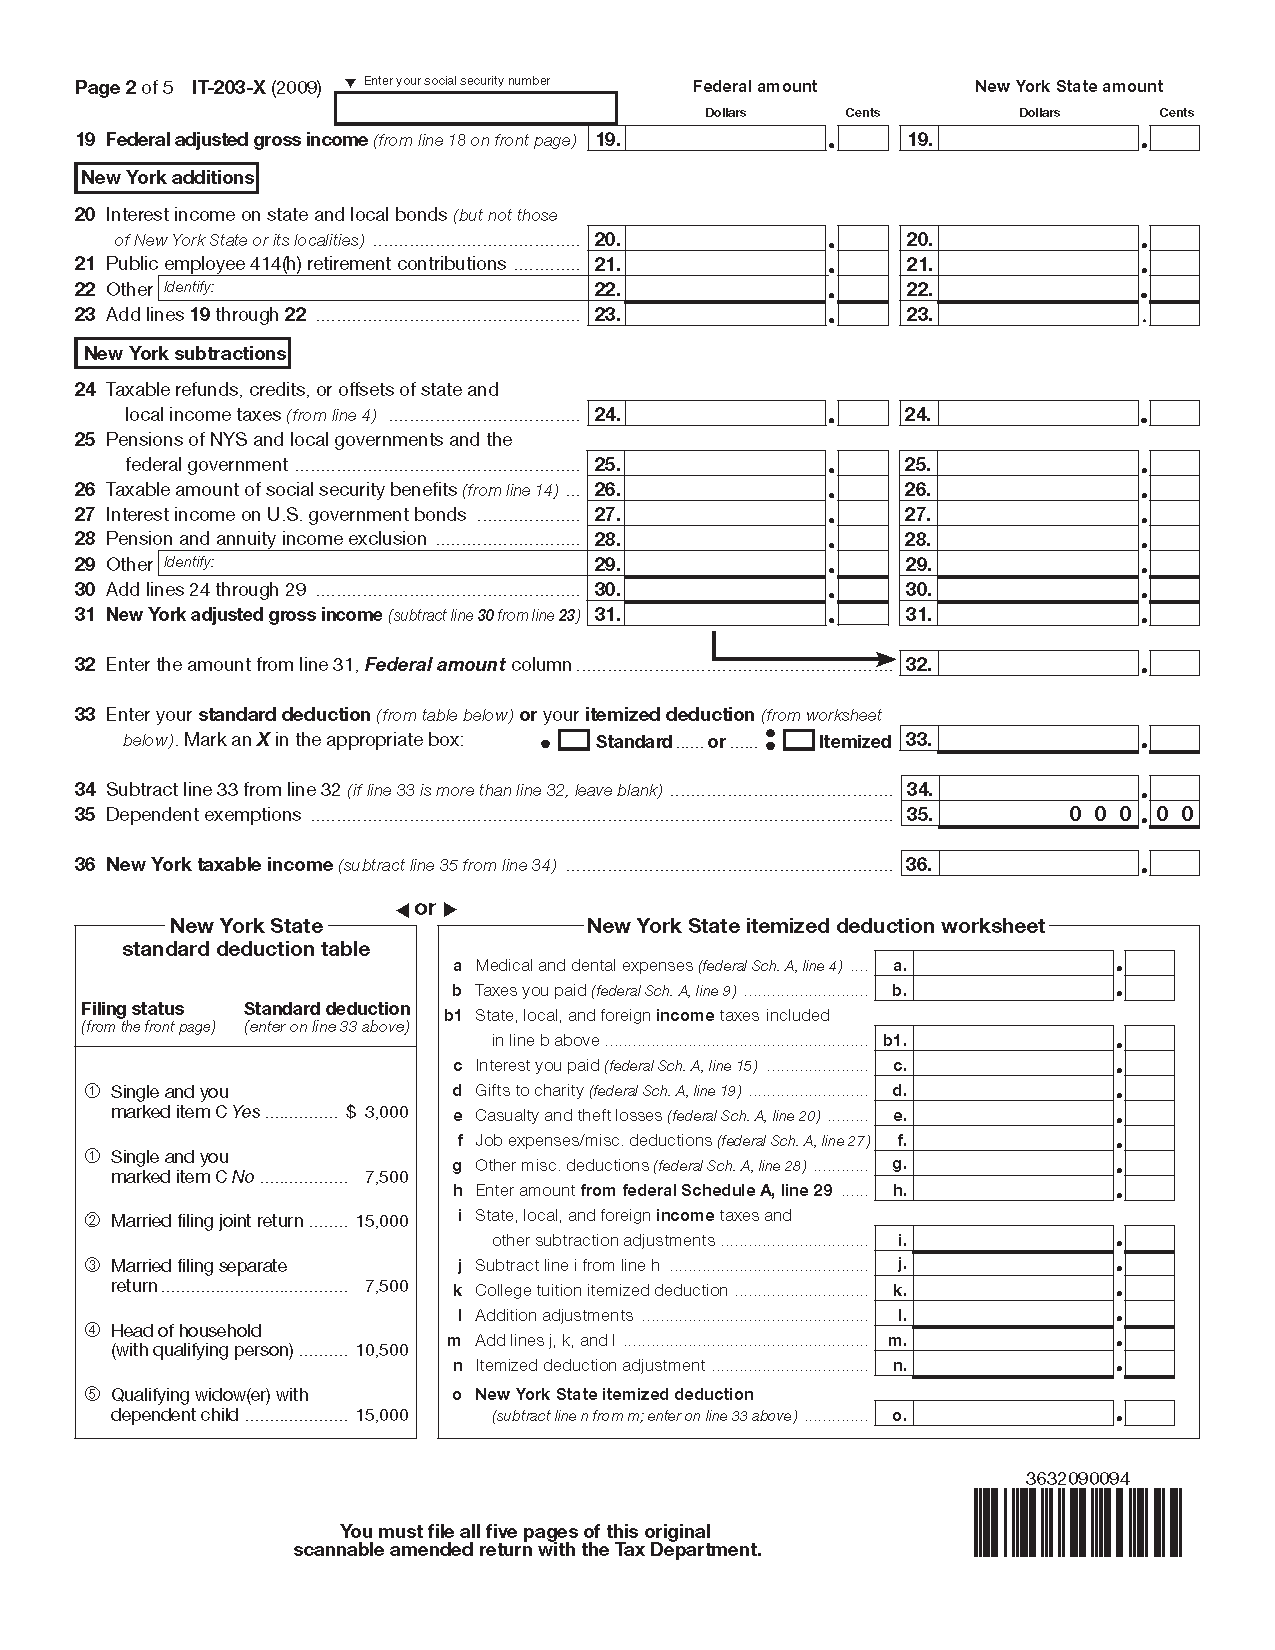 Federal Tax Worksheet 2015 And 2015 Federal Tax Social Security Worksheet